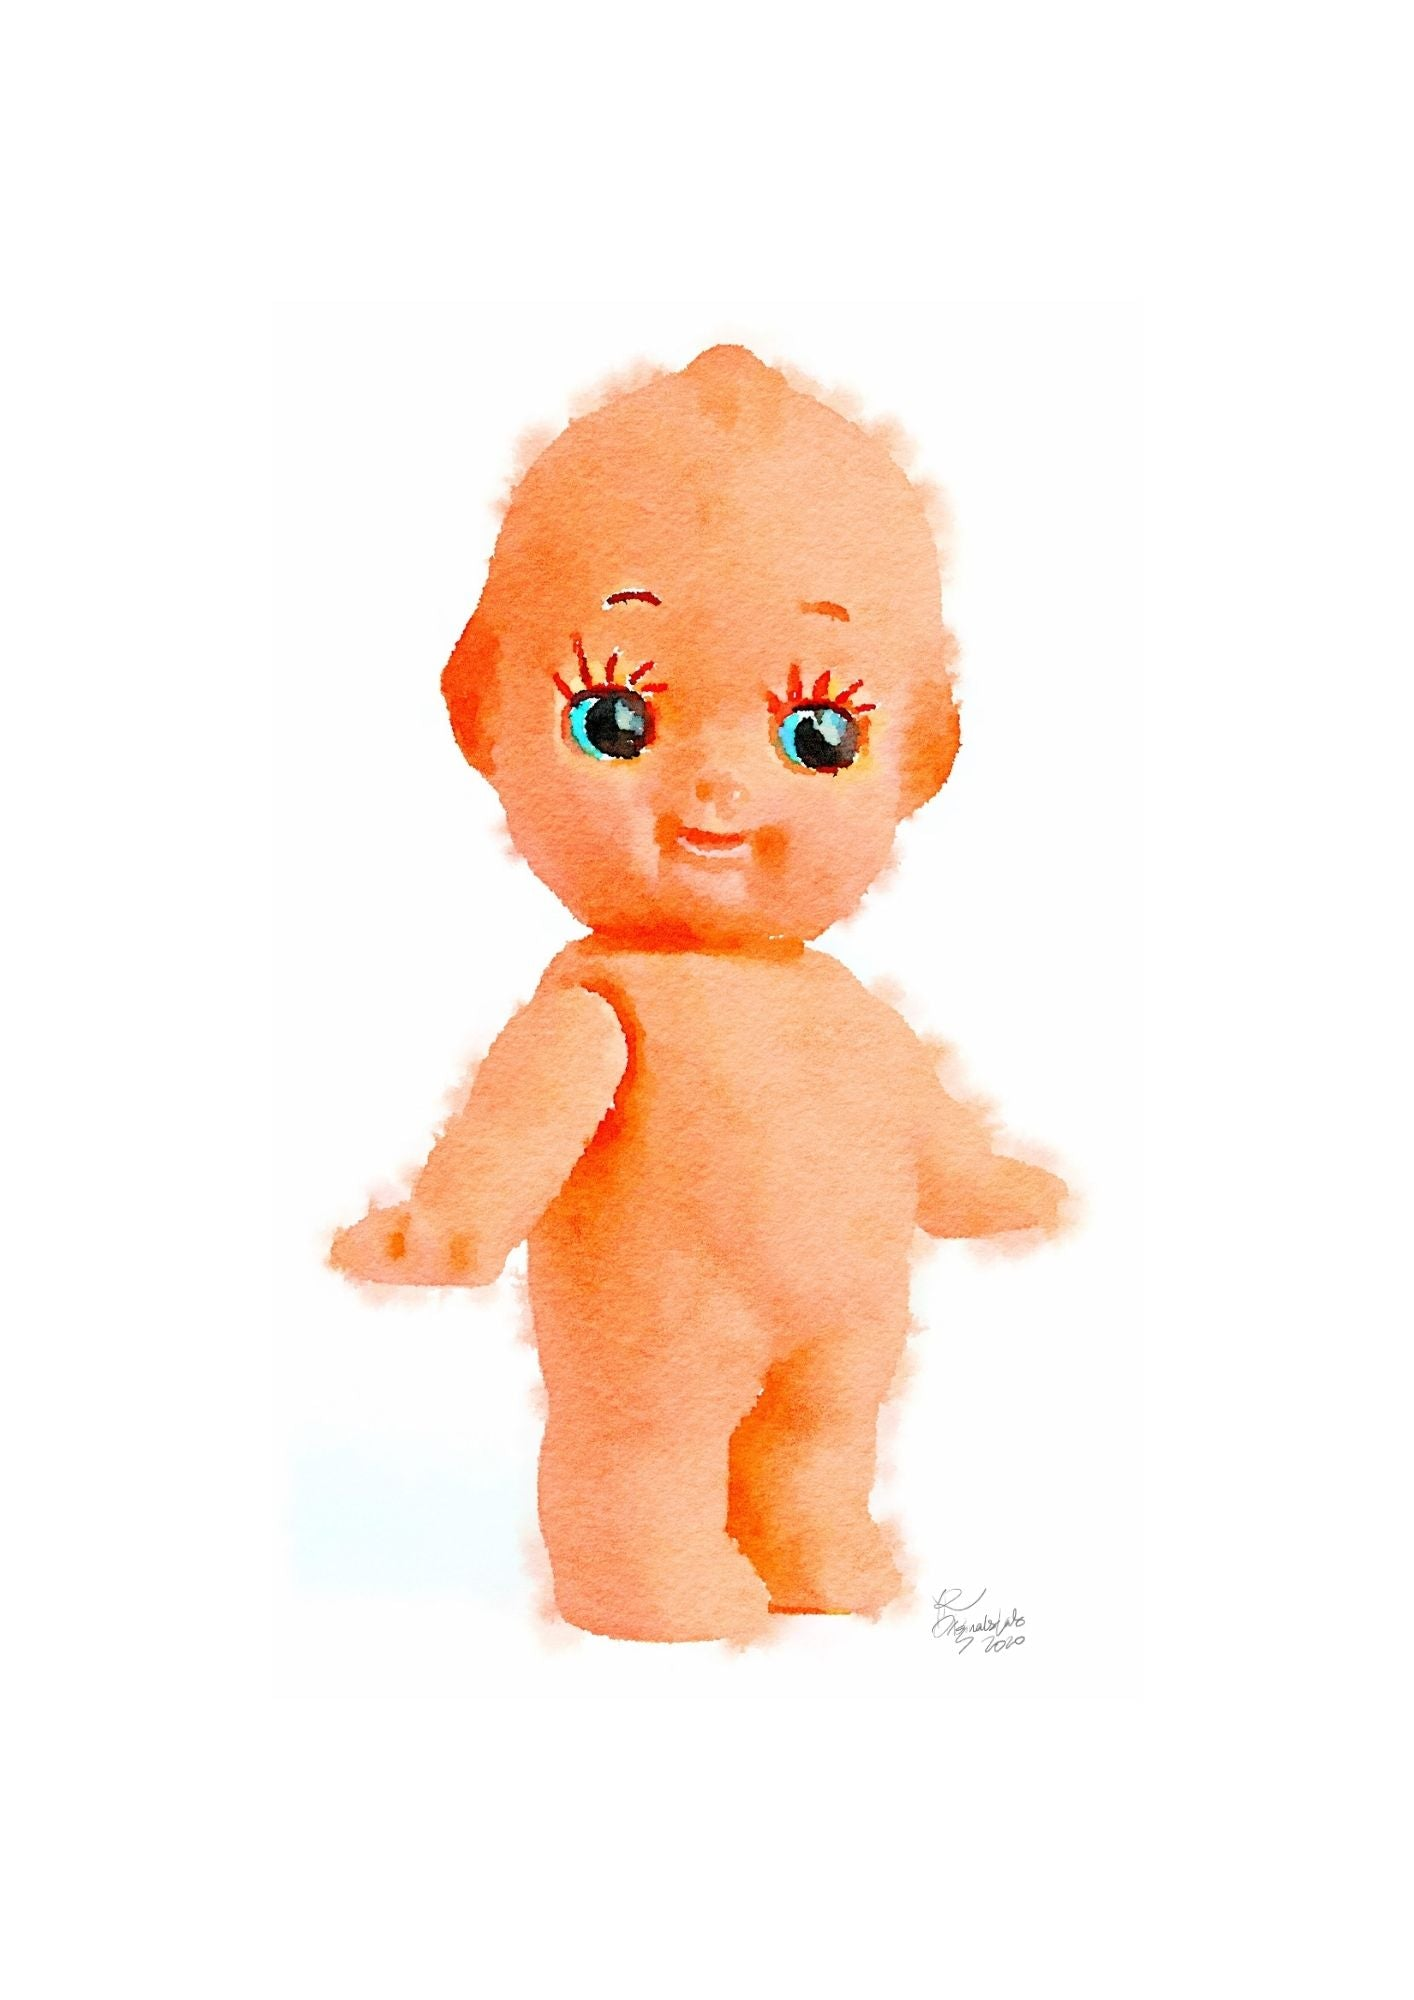 Kewpie Doll Digital Print